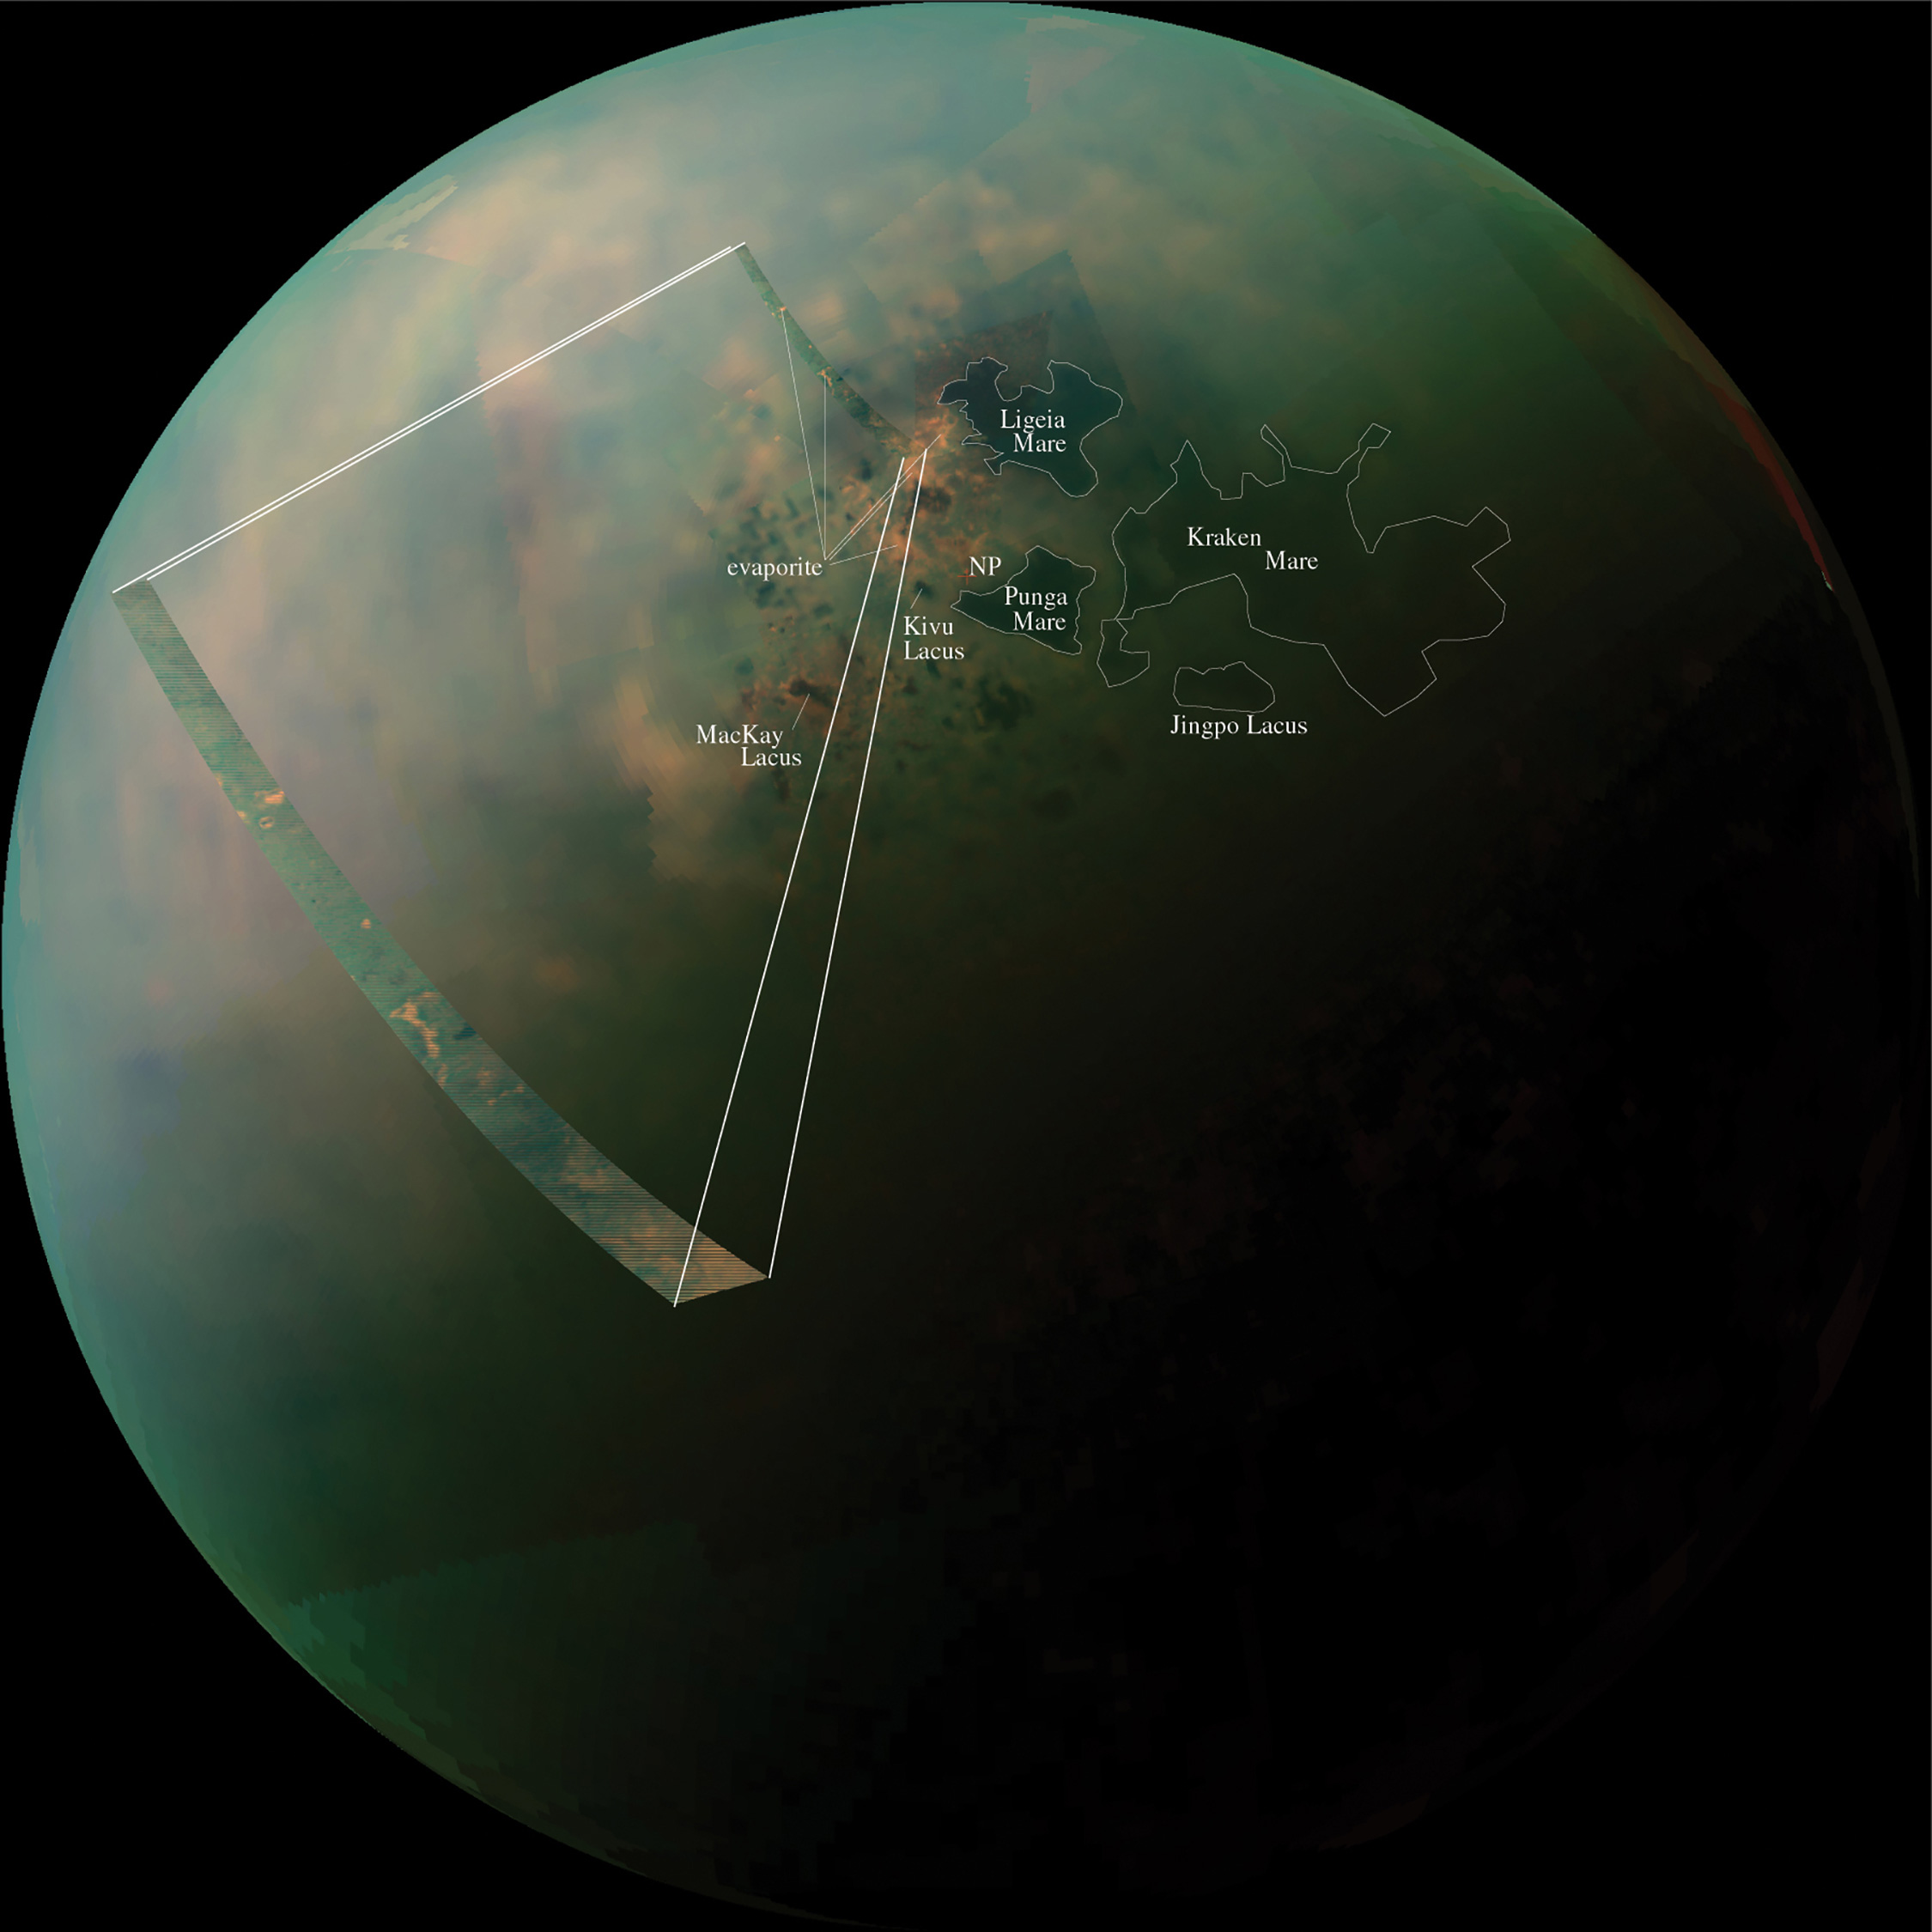 titan-lakes-annotated-PIA17470